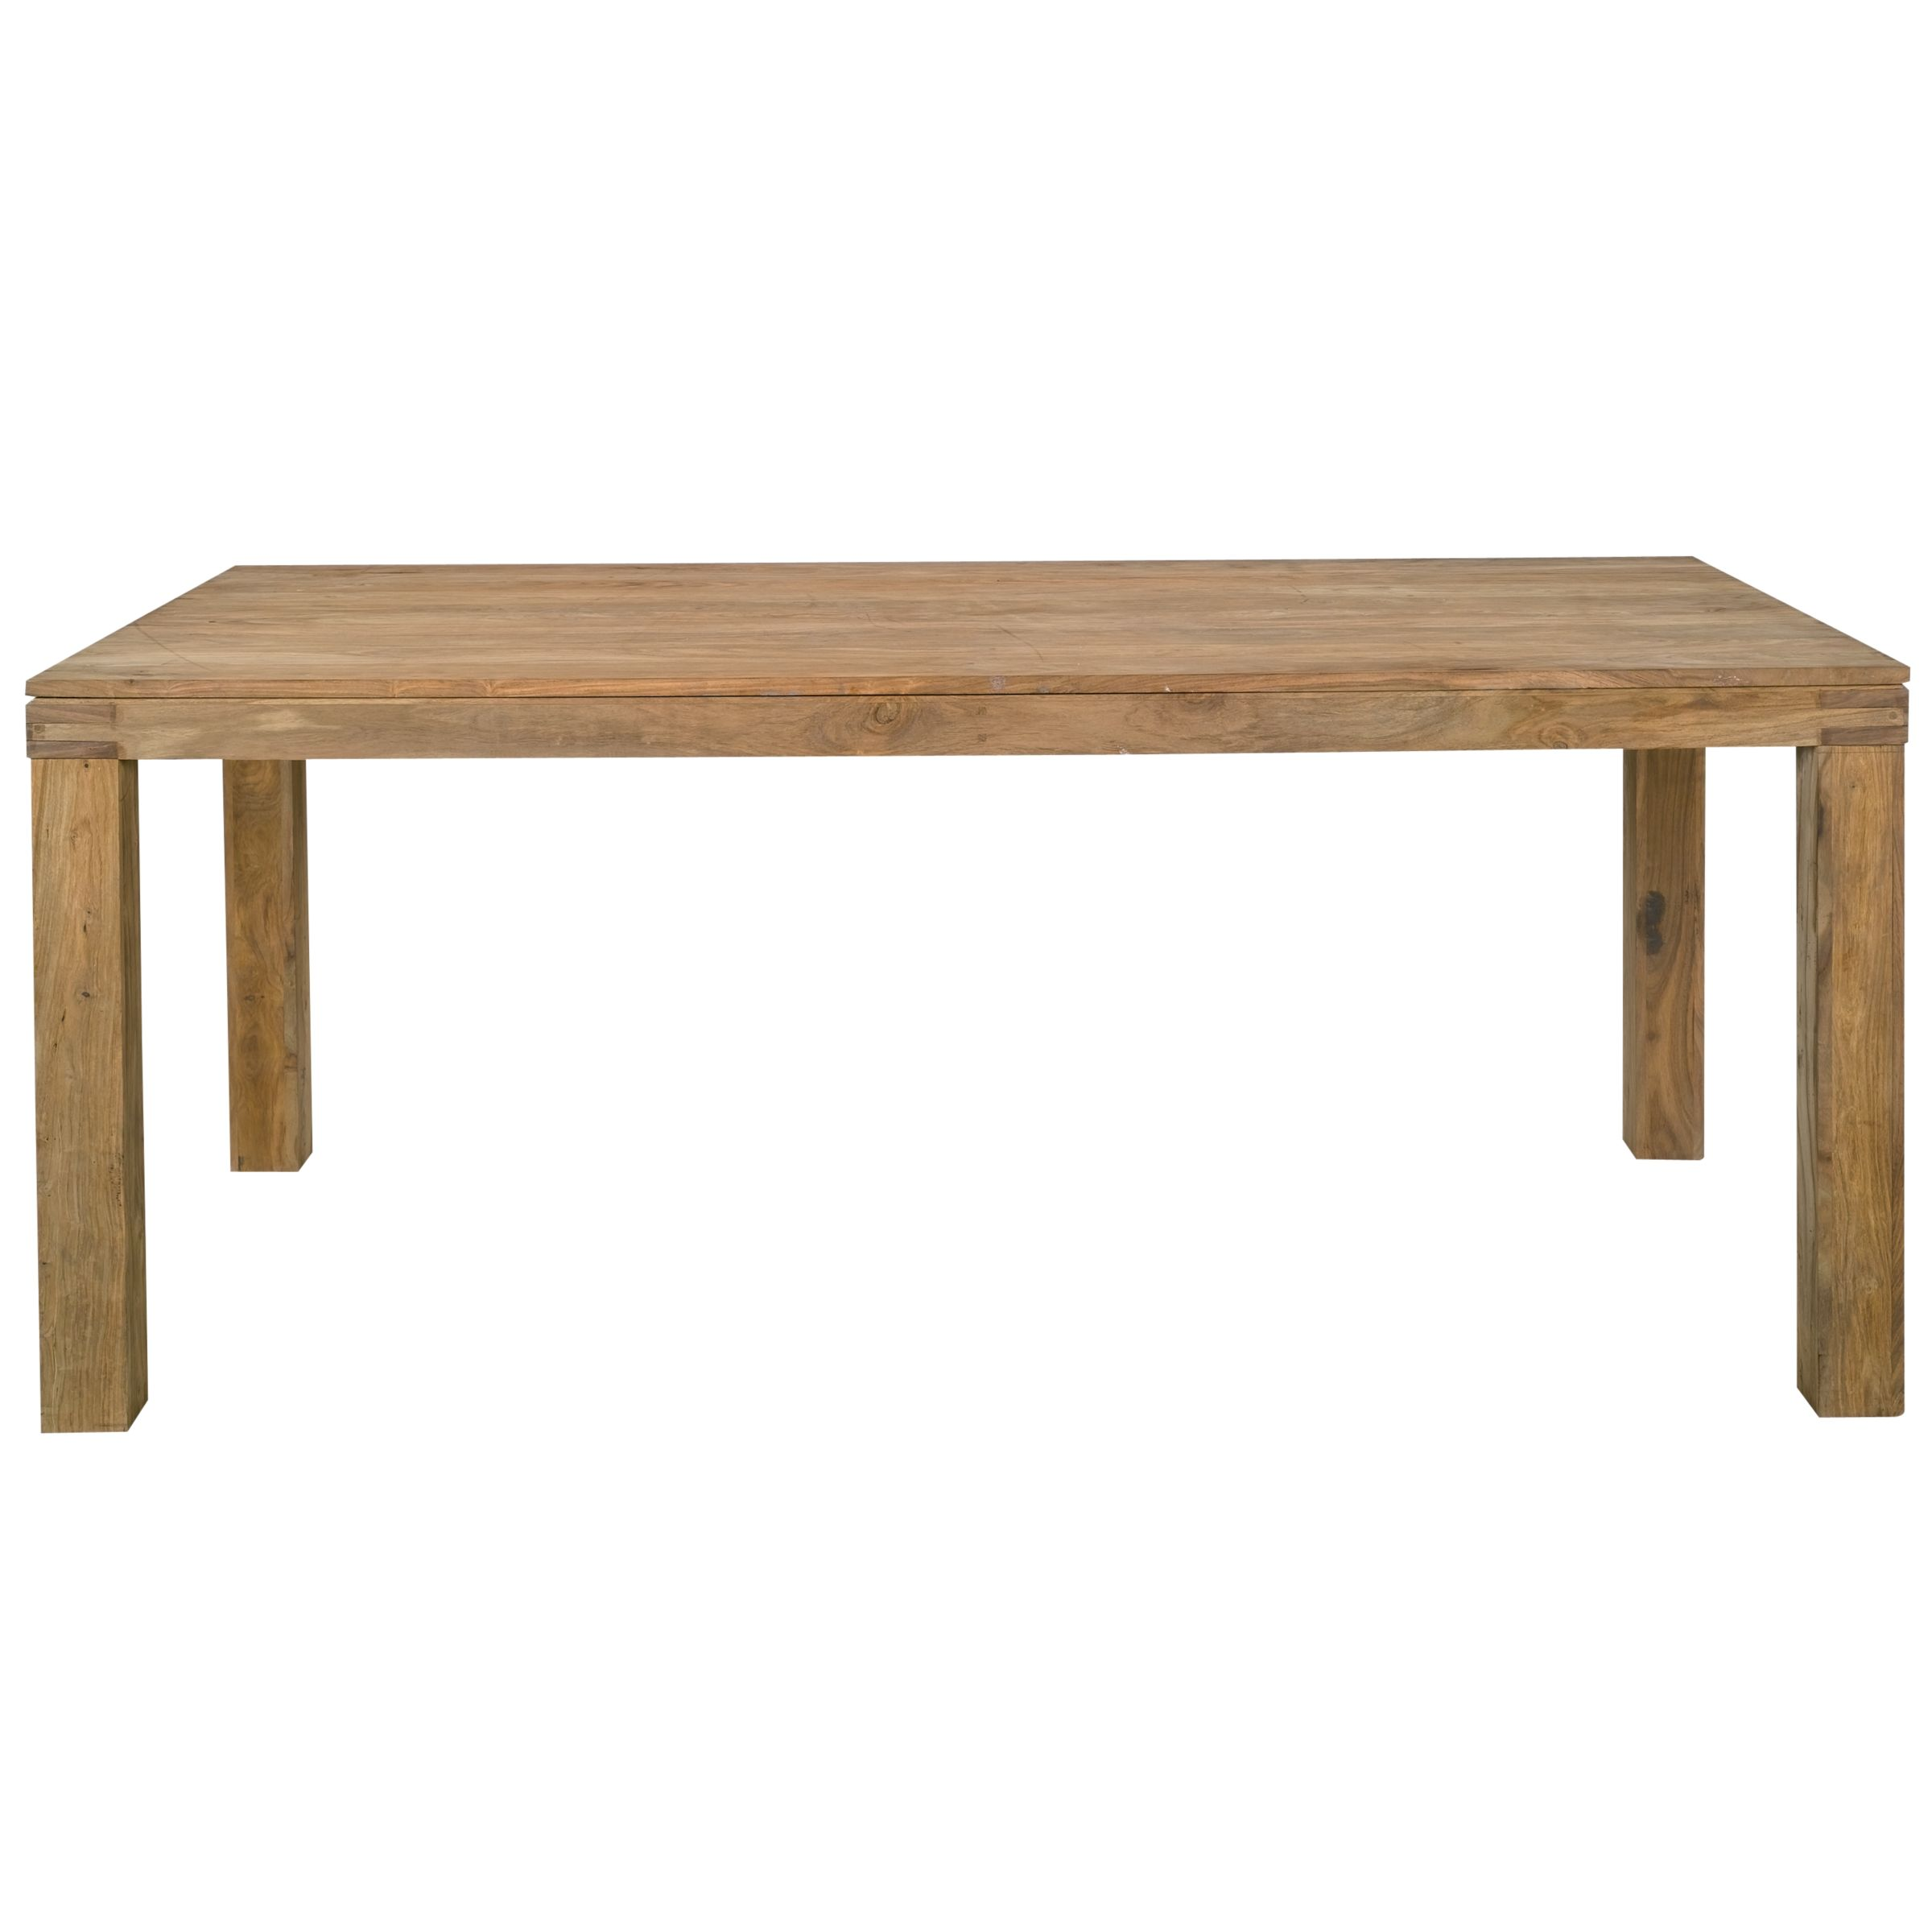 john lewis dining furniture reviews : 230962789 from www.comparestoreprices.co.uk size 1600 x 1600 jpeg 114kB